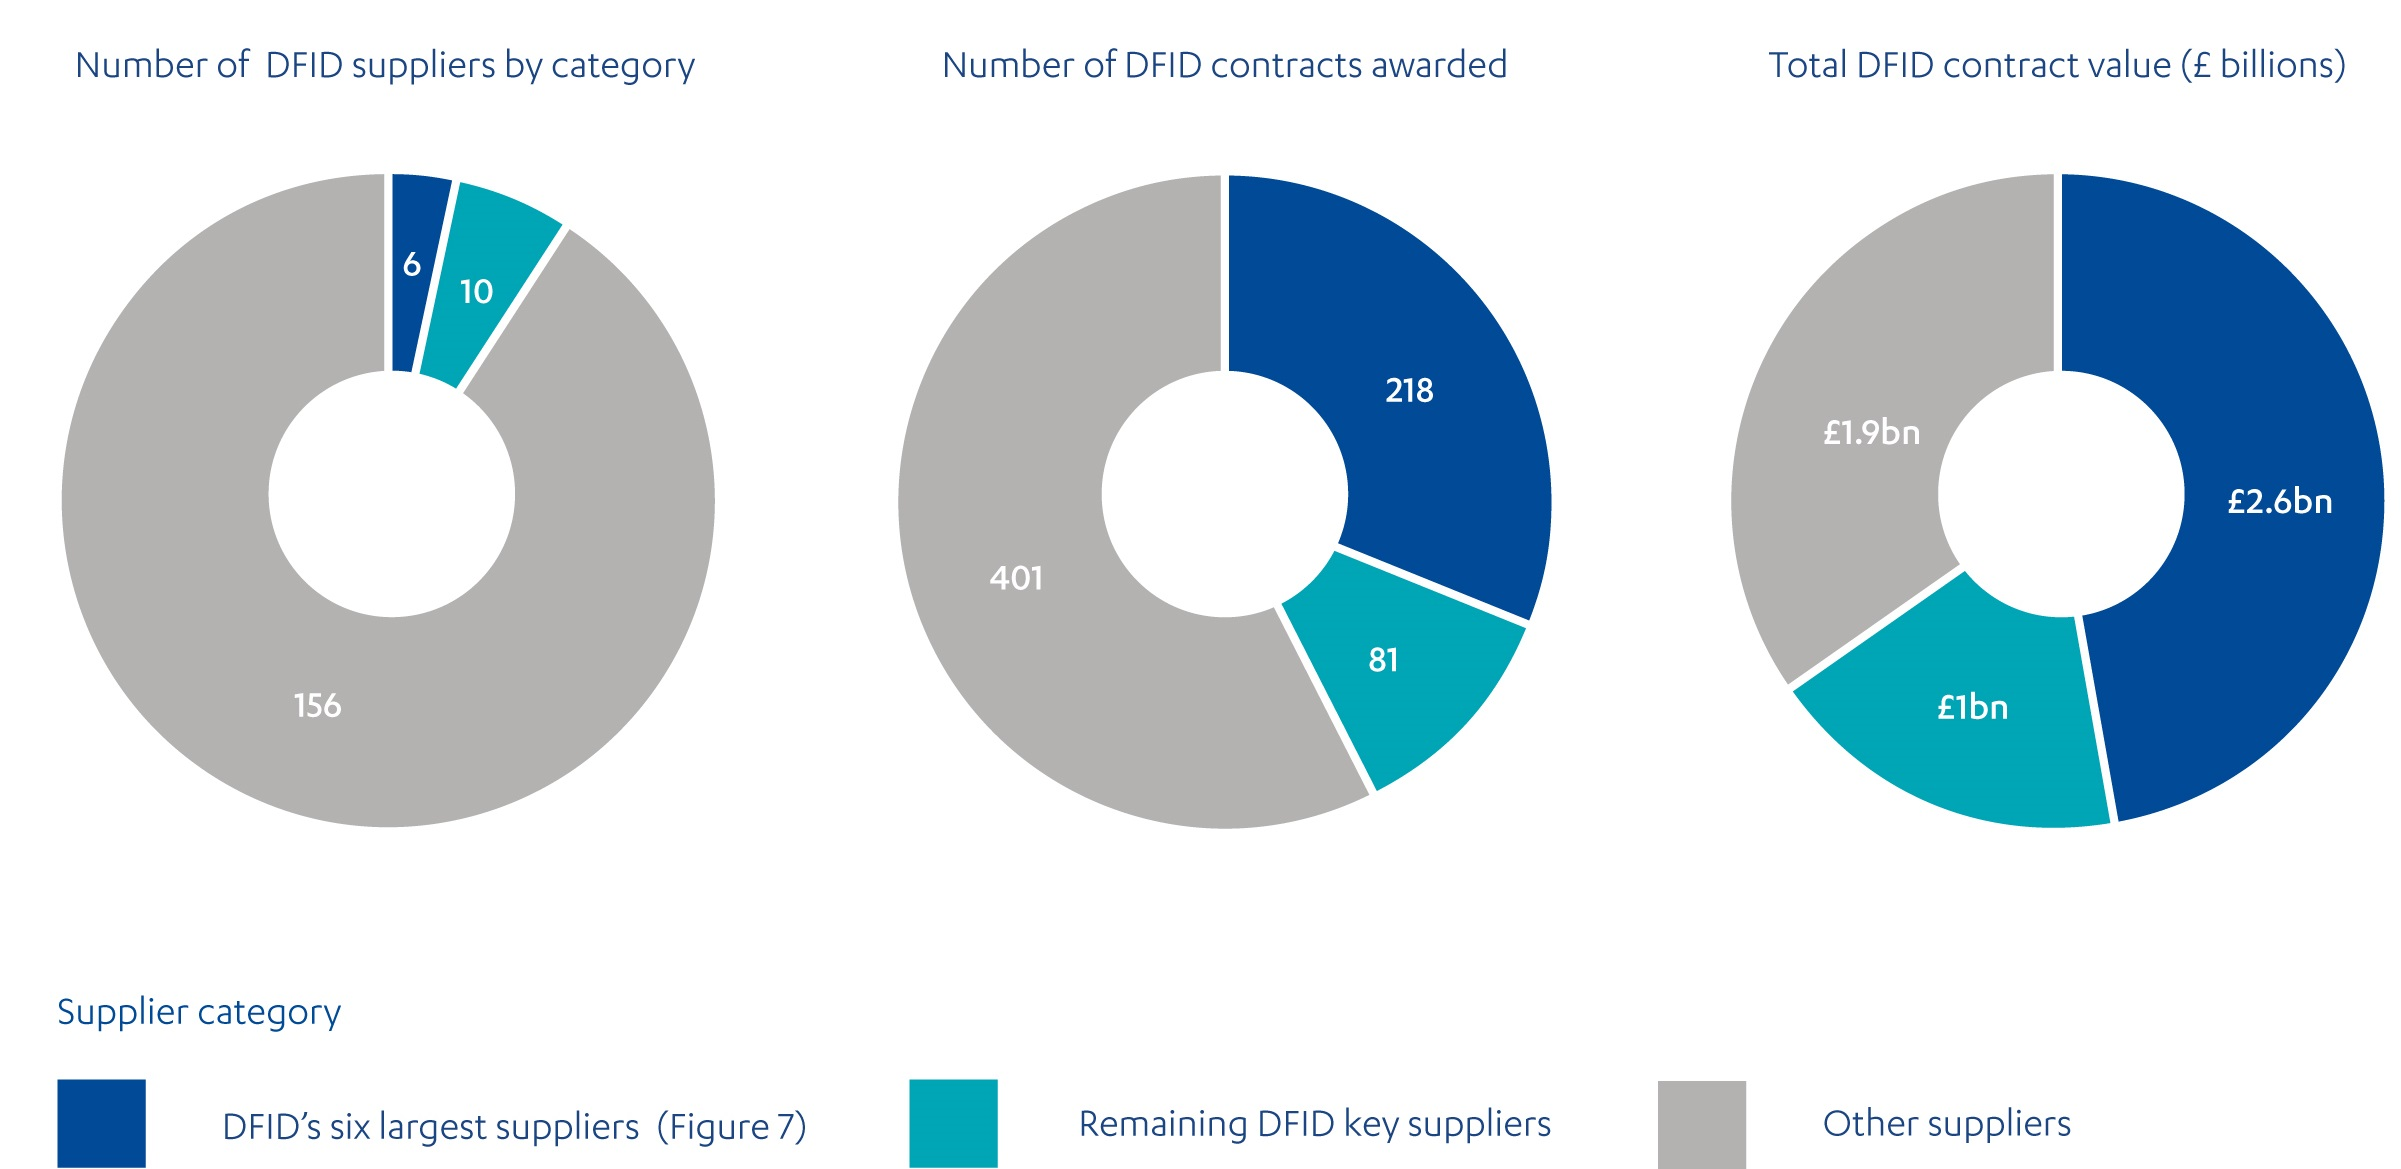 Three pie charts showing a breakdown of DFID's suppliers by category (six largest, other key and other suppliers), the number and value of the contracts they were awarded between 2012-13 and 2016-17.